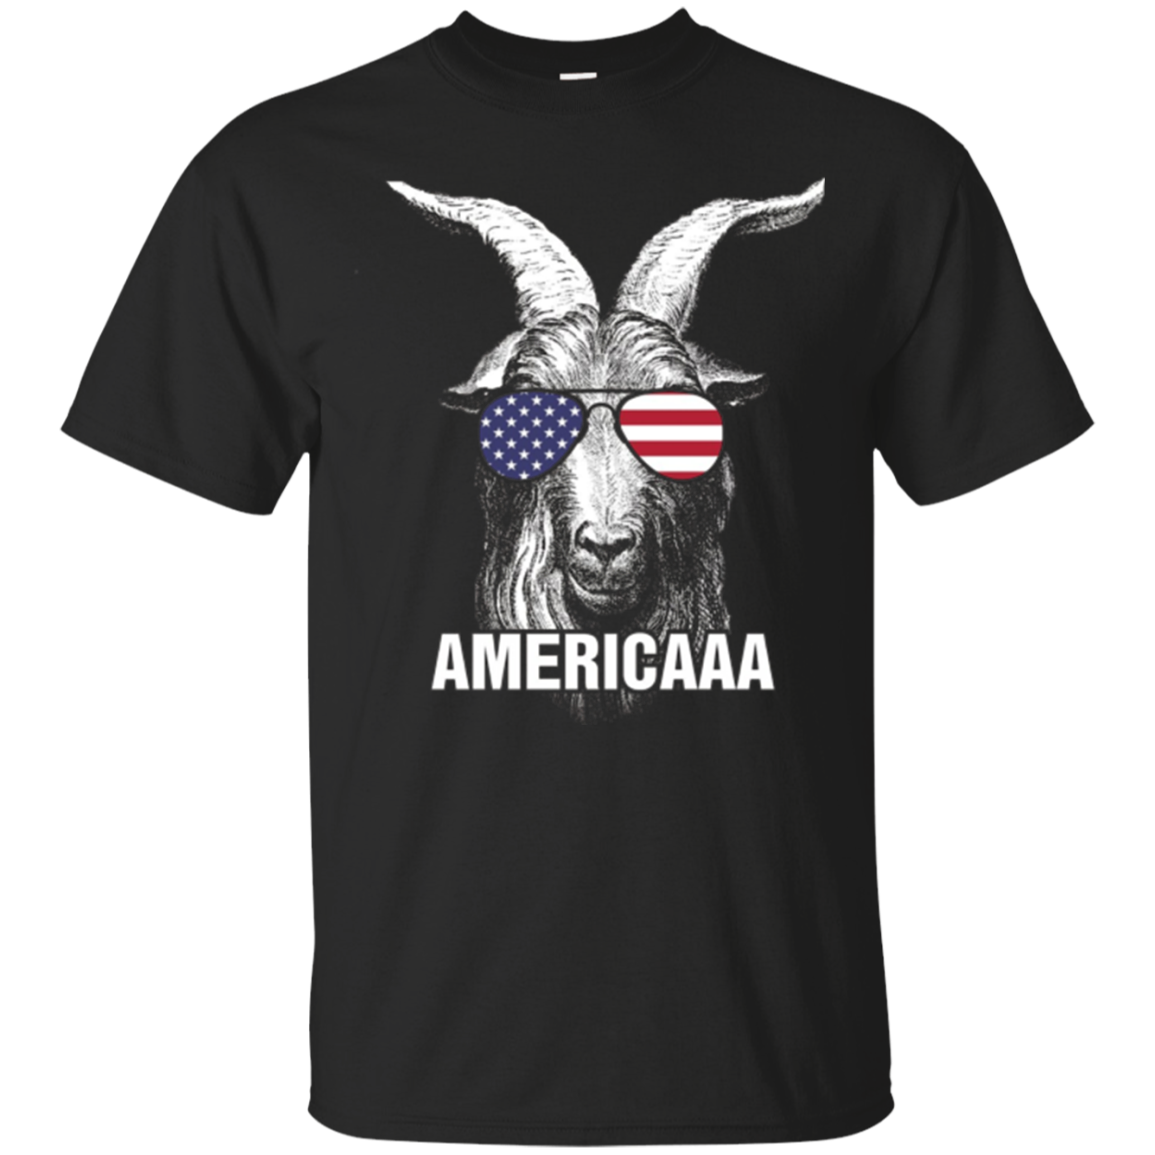 4th of July Funny T-Shirt Patriotic Shirt Sunglasses Goat